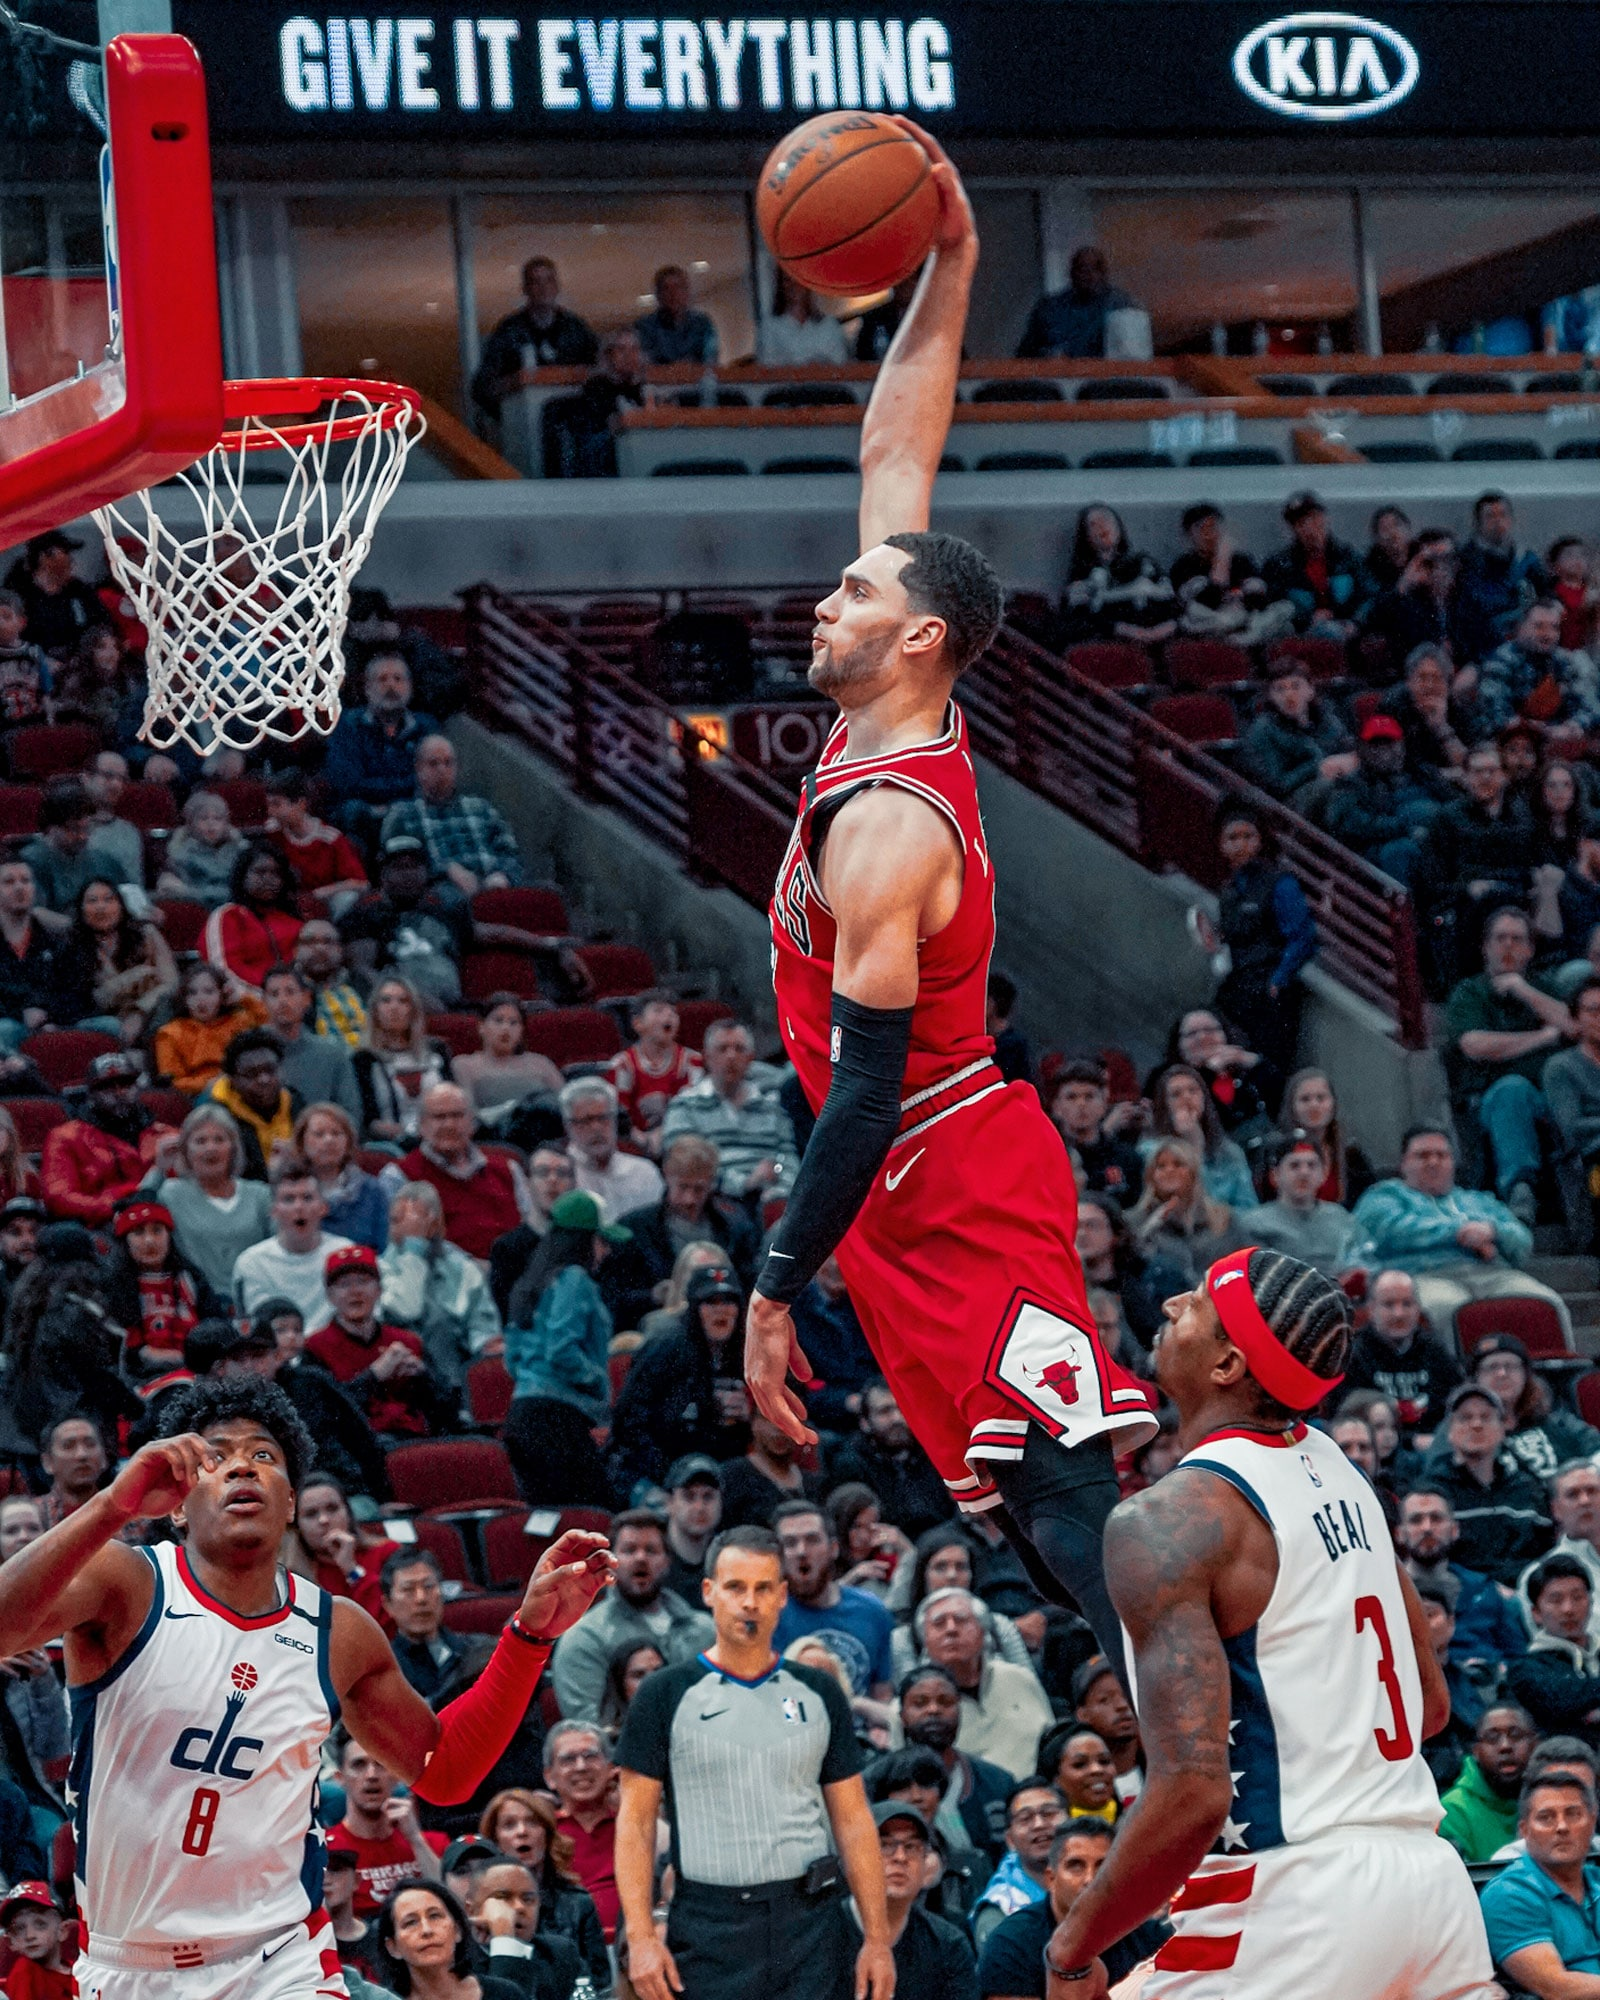 Zach LaVine rises up for a tomahawk jam in the fourth quarter.